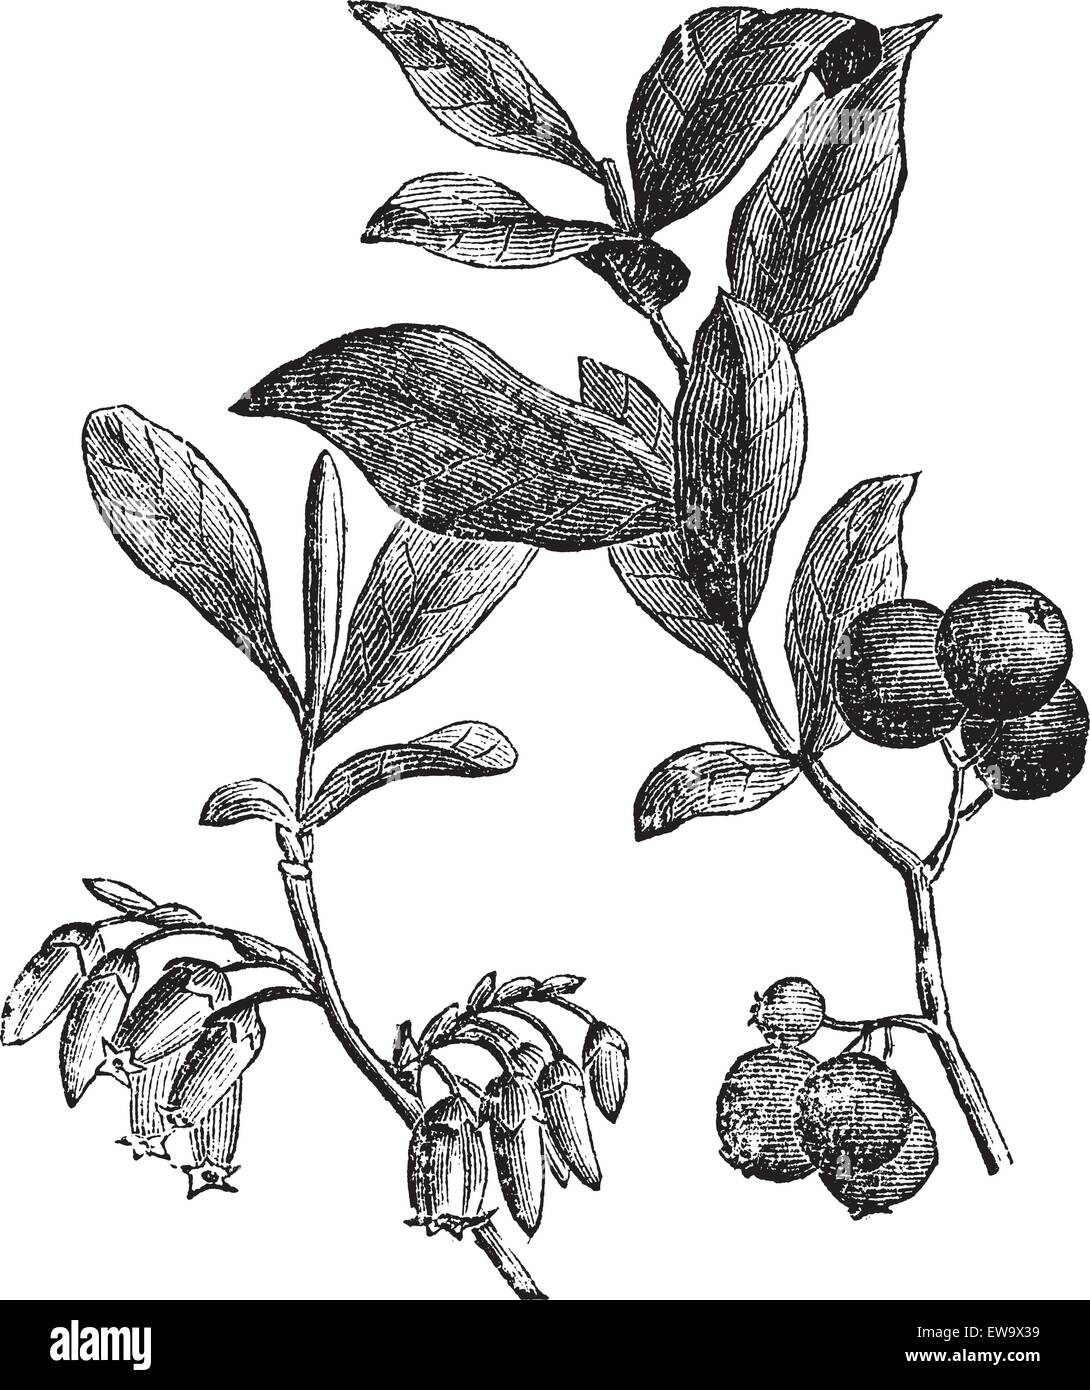 Huckleberry or Gaylussacia resinosa engravin. Old vintage engraved illustration of huckleberry plant. The huckleberry - Stock Image